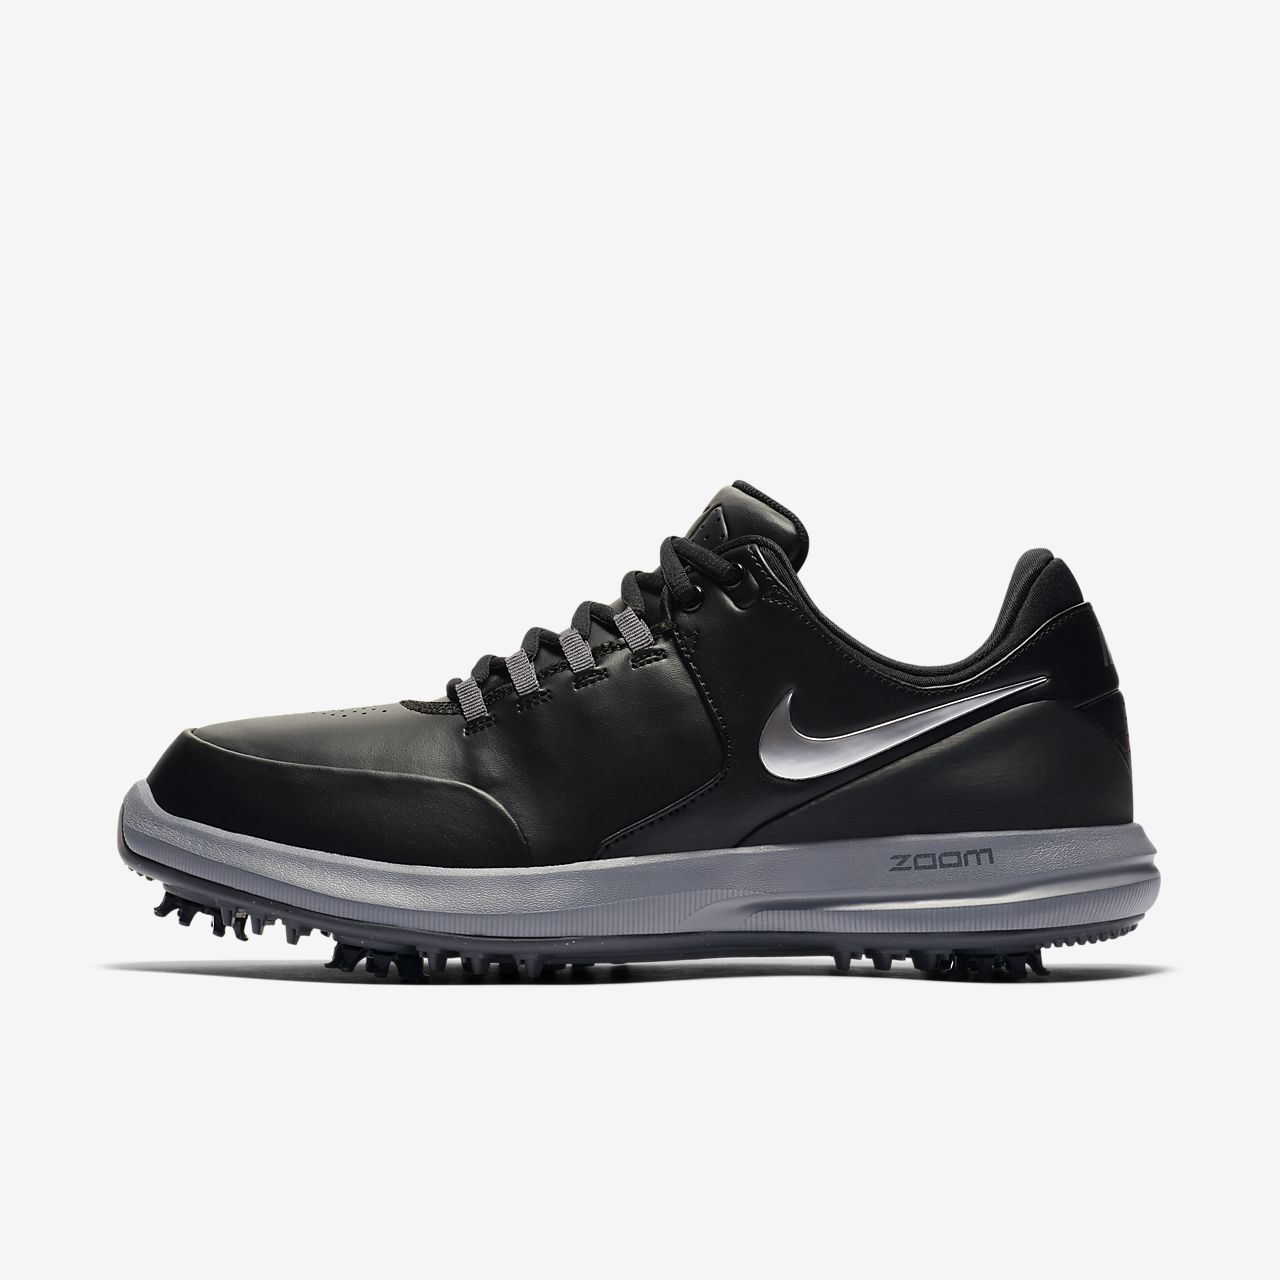 Golfsko Nike Air Zoom Accurate för män